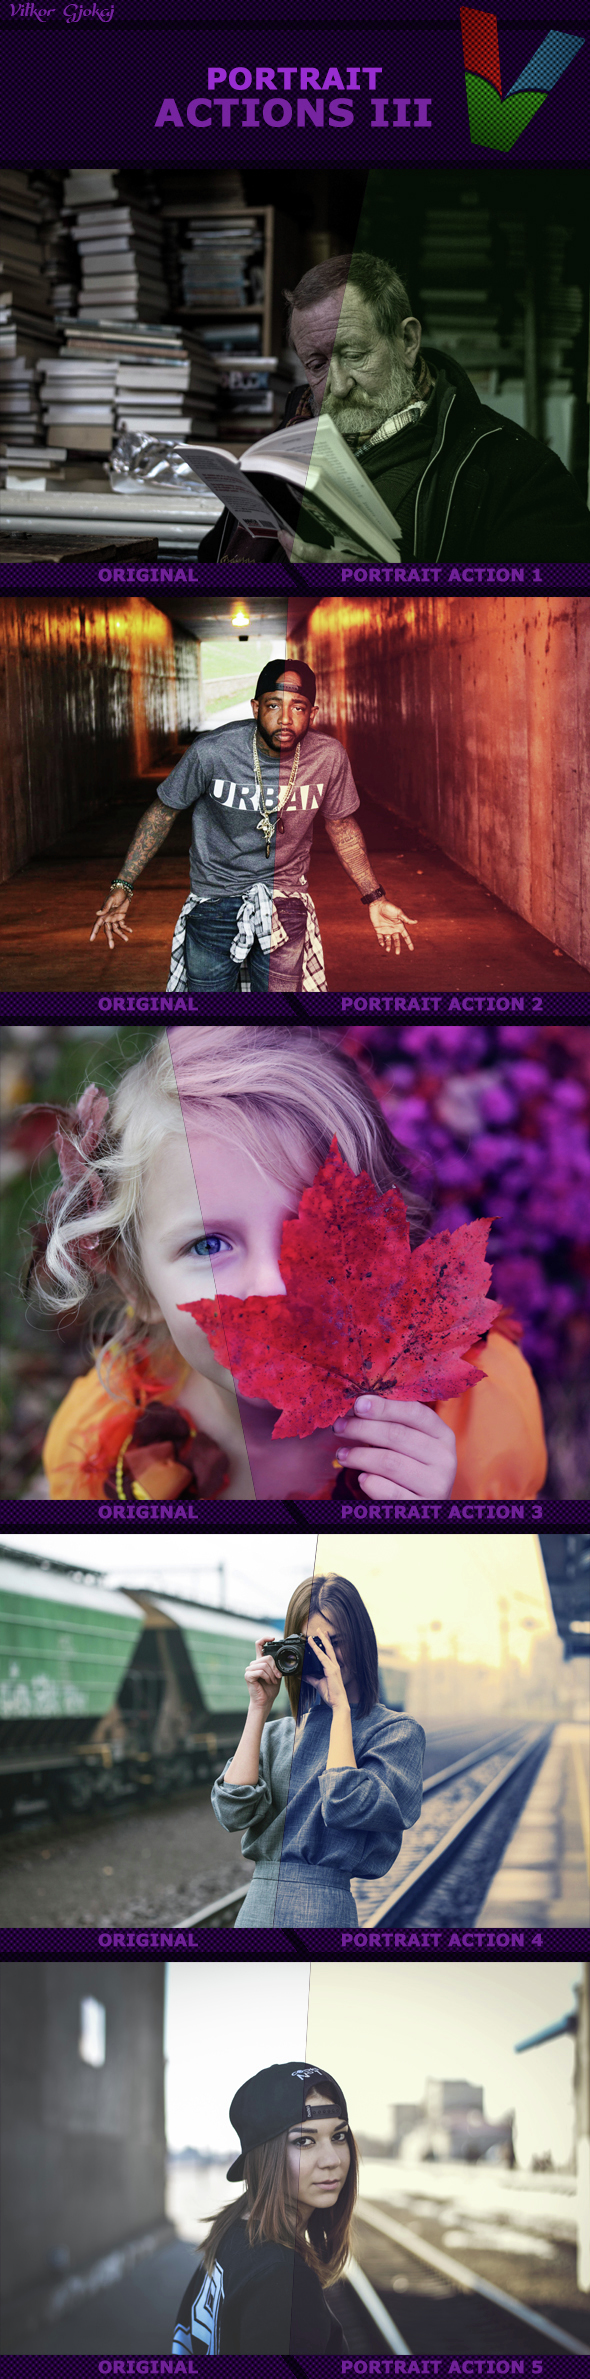 Portrait Actions III - Photo Effects Actions